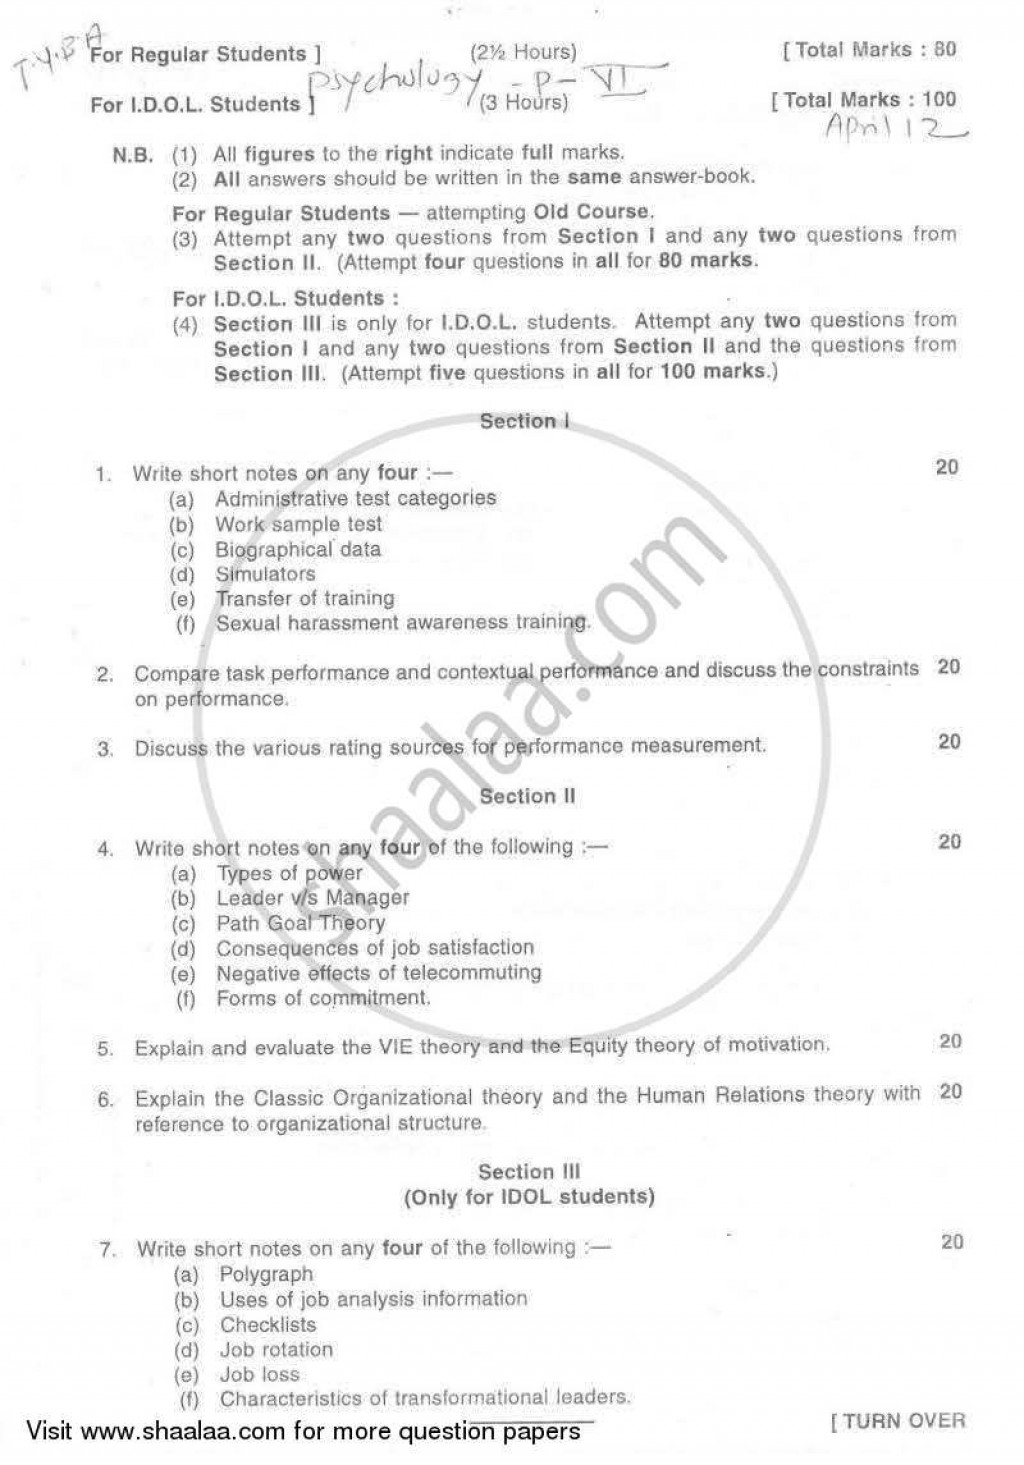 017 Psychologyearch Paper On Dreams University Of Mumbai Bachelor Industrial Organizational T Y Yearly Pattern Semester Tyba 2011 29a03925dfc524f2aa4cb10e4d3da996a Singular Psychology Research Topics Large